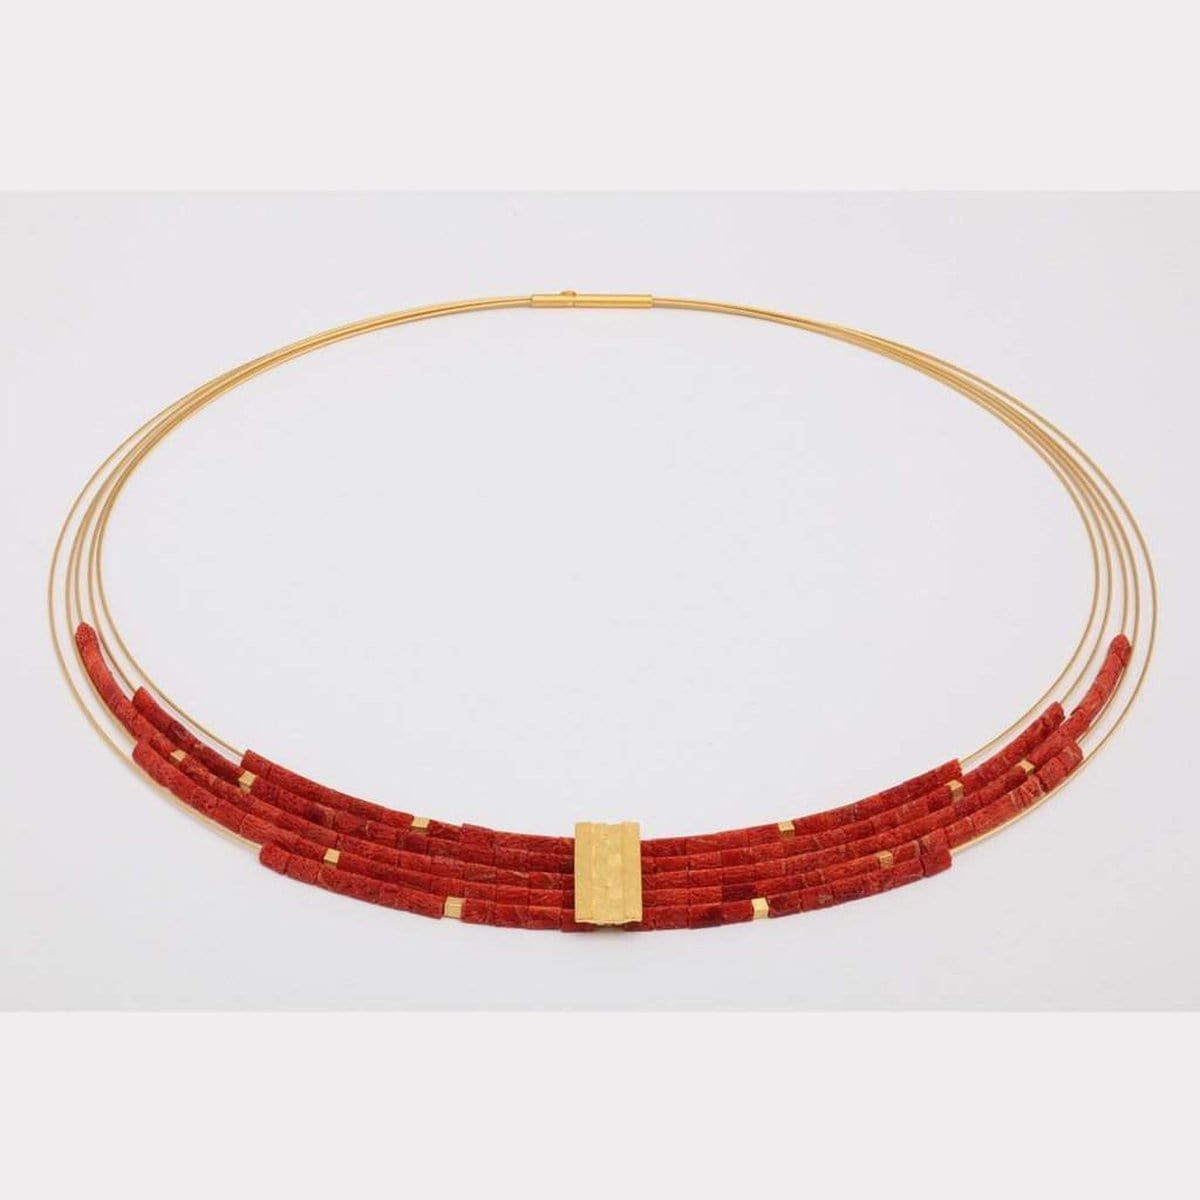 Orfea Red Coral Necklace - 85285296-Bernd Wolf-Renee Taylor Gallery